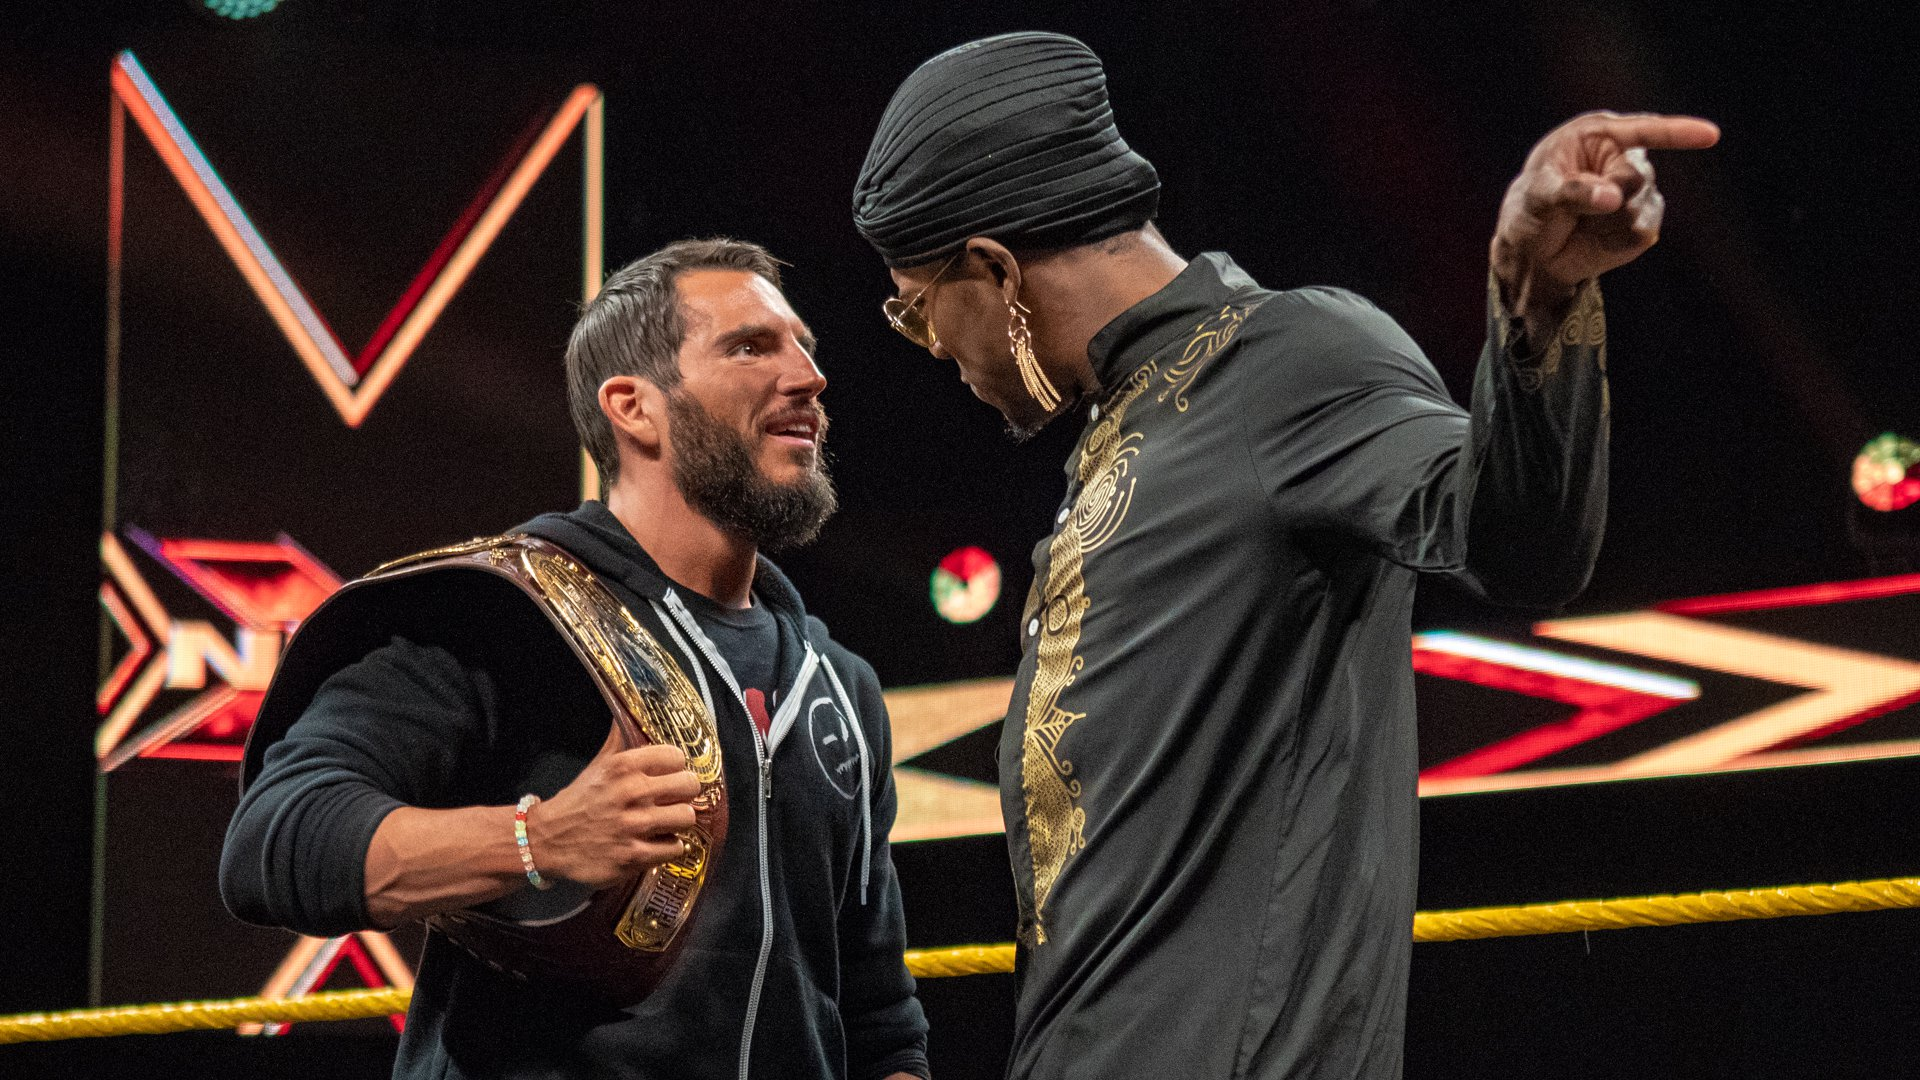 Velveteen Dream décide de s Johnny Gargano's NXT North American Title: WWE NXT, Feb. 6, 2019